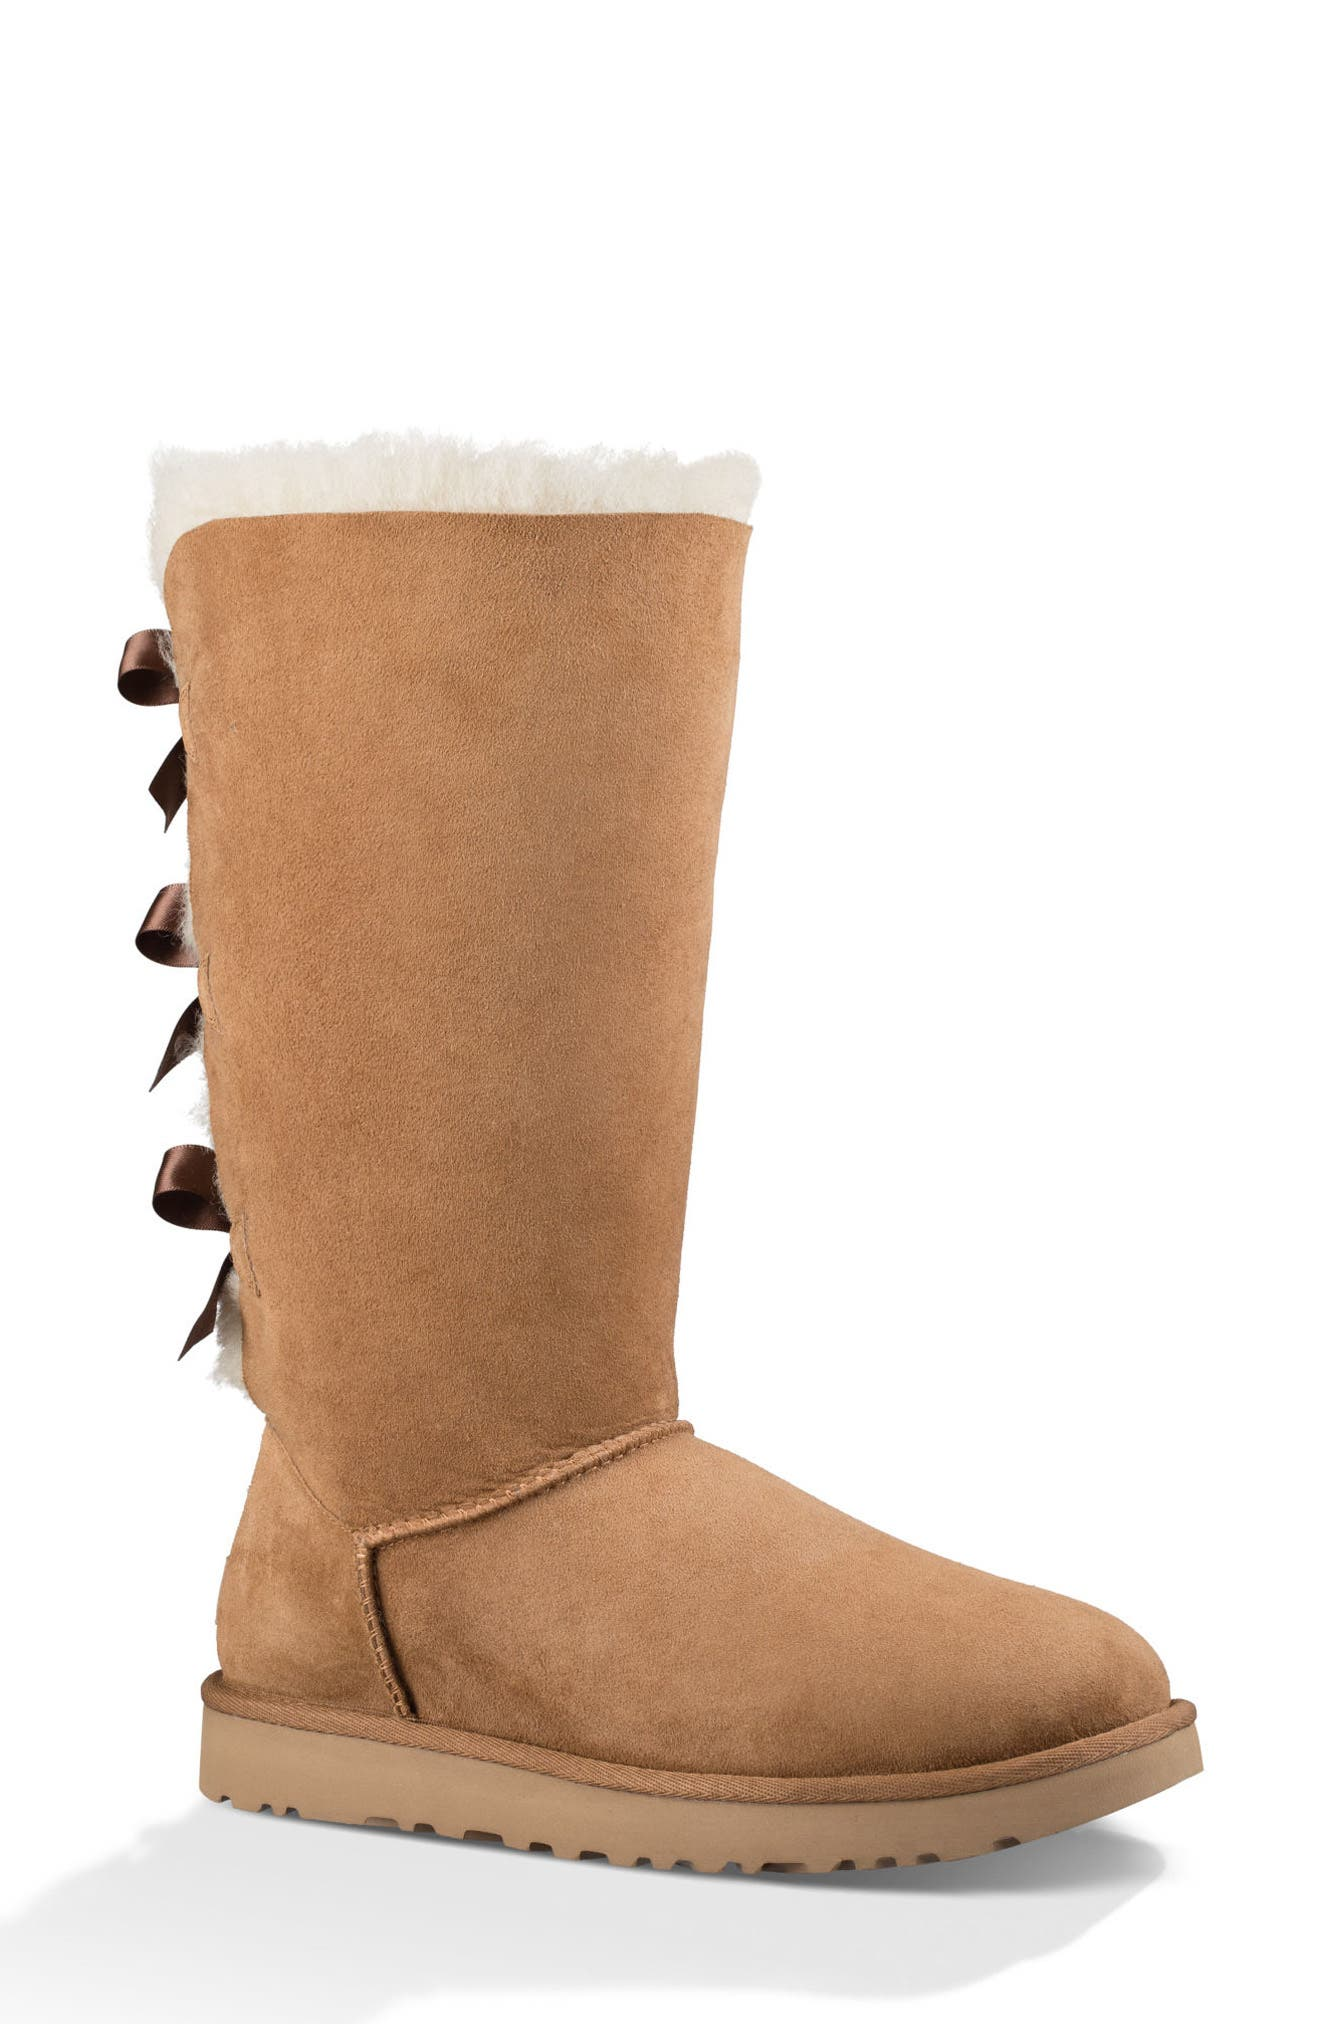 UGG BAILEY BOW TALL SHEARLING FUR BOOT, CHESTNUT